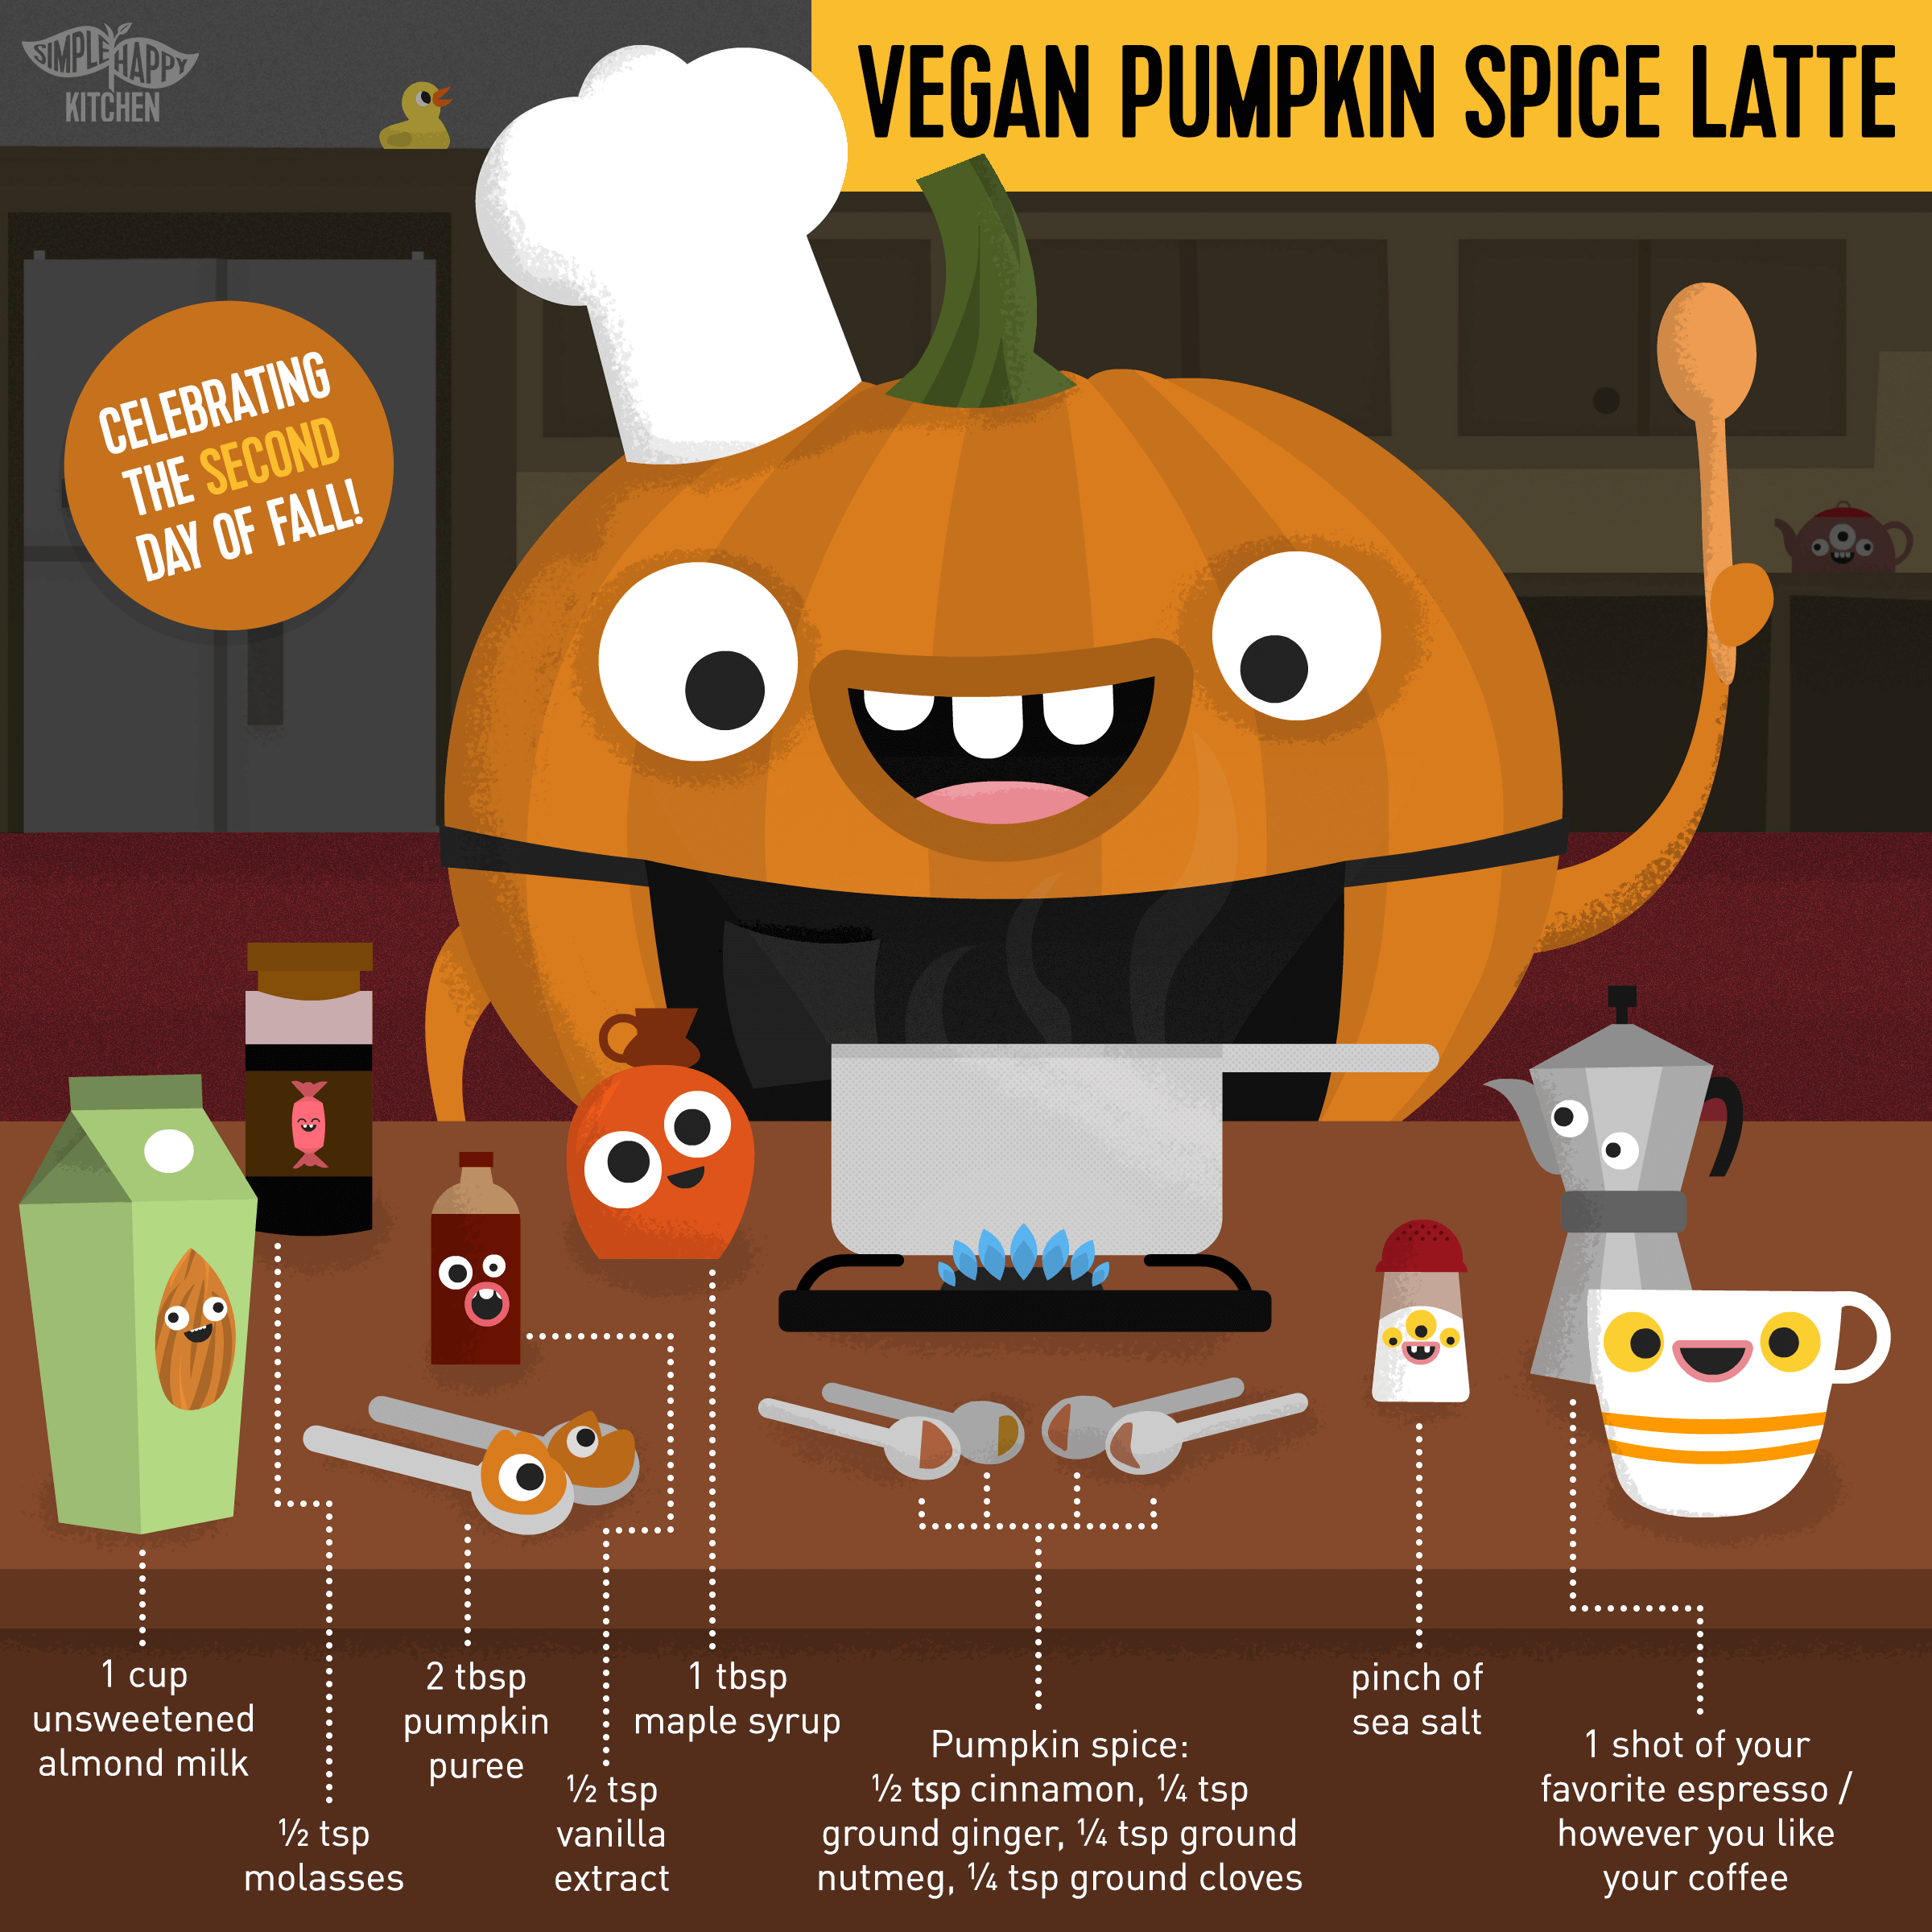 It's the second day of fall! Let's all have some vegan pumpkin spice latte